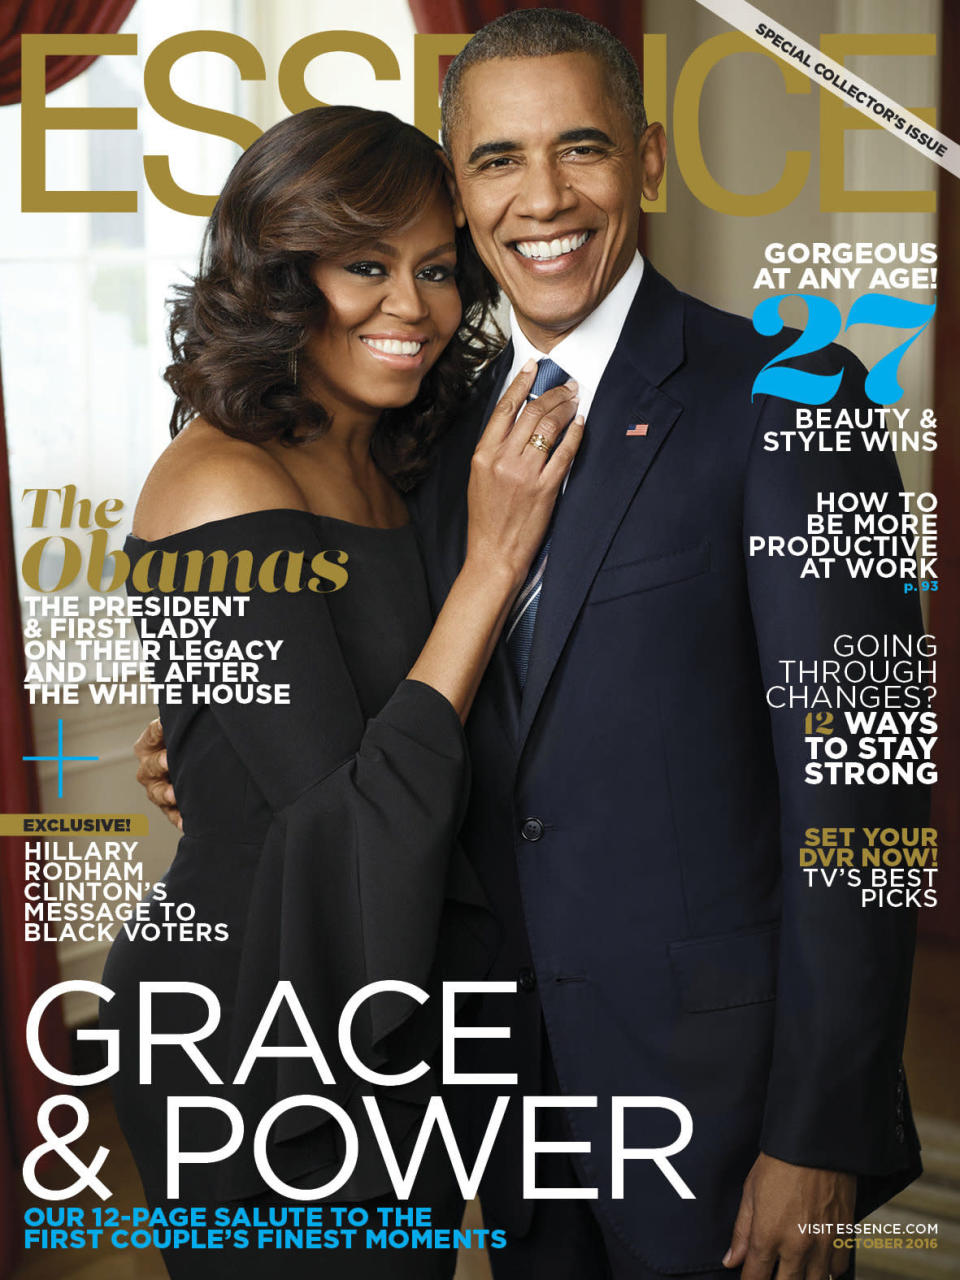 <p>Arguably the ultimate power couple, the then-President of the US took to <em>Essence</em> magazine towards the end of his term to give an interview with Michelle. The duo looked as professional, yet on-trend, as ever with Barack in a navy suit and Michelle in an off-the-shoulder top. </p>